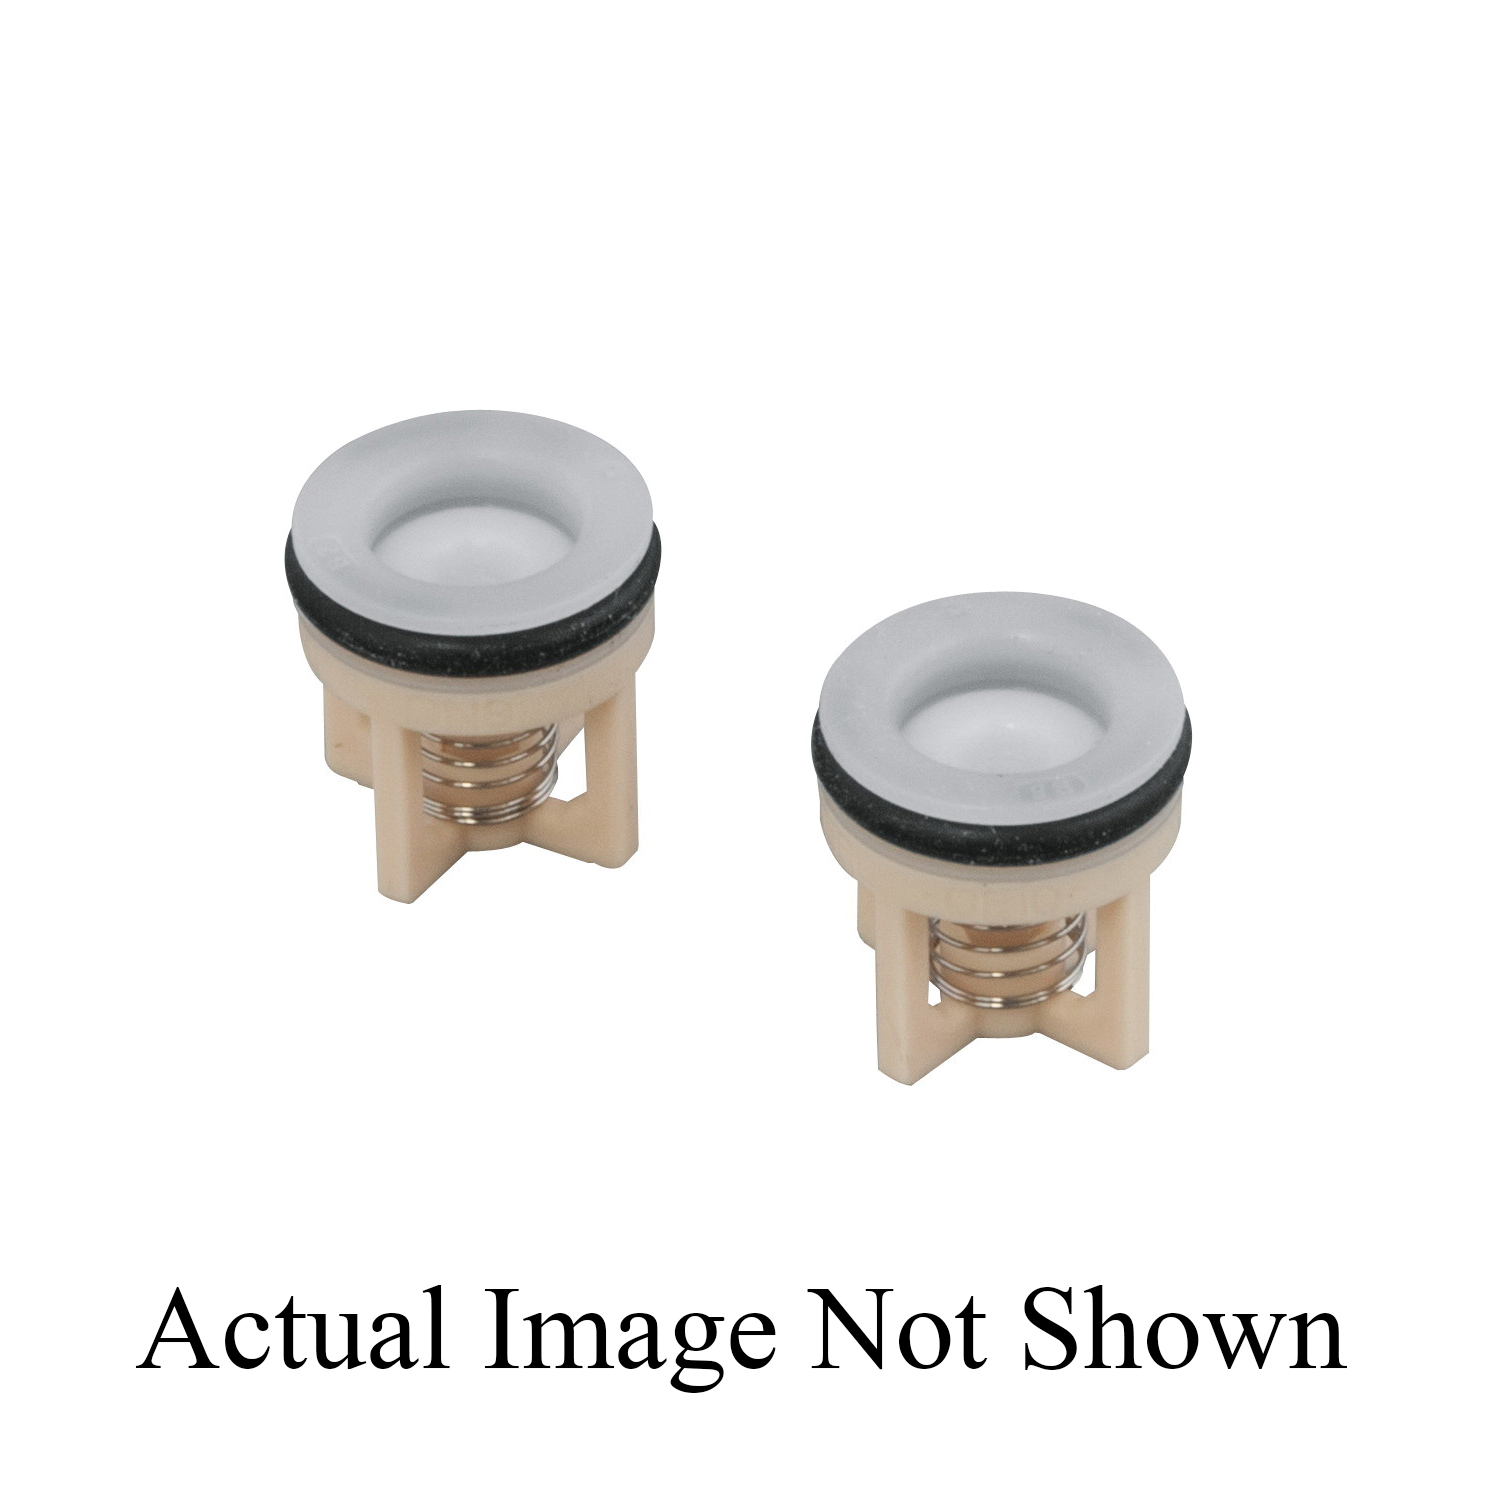 GROHE 47687000 Non-Return Valve, Import